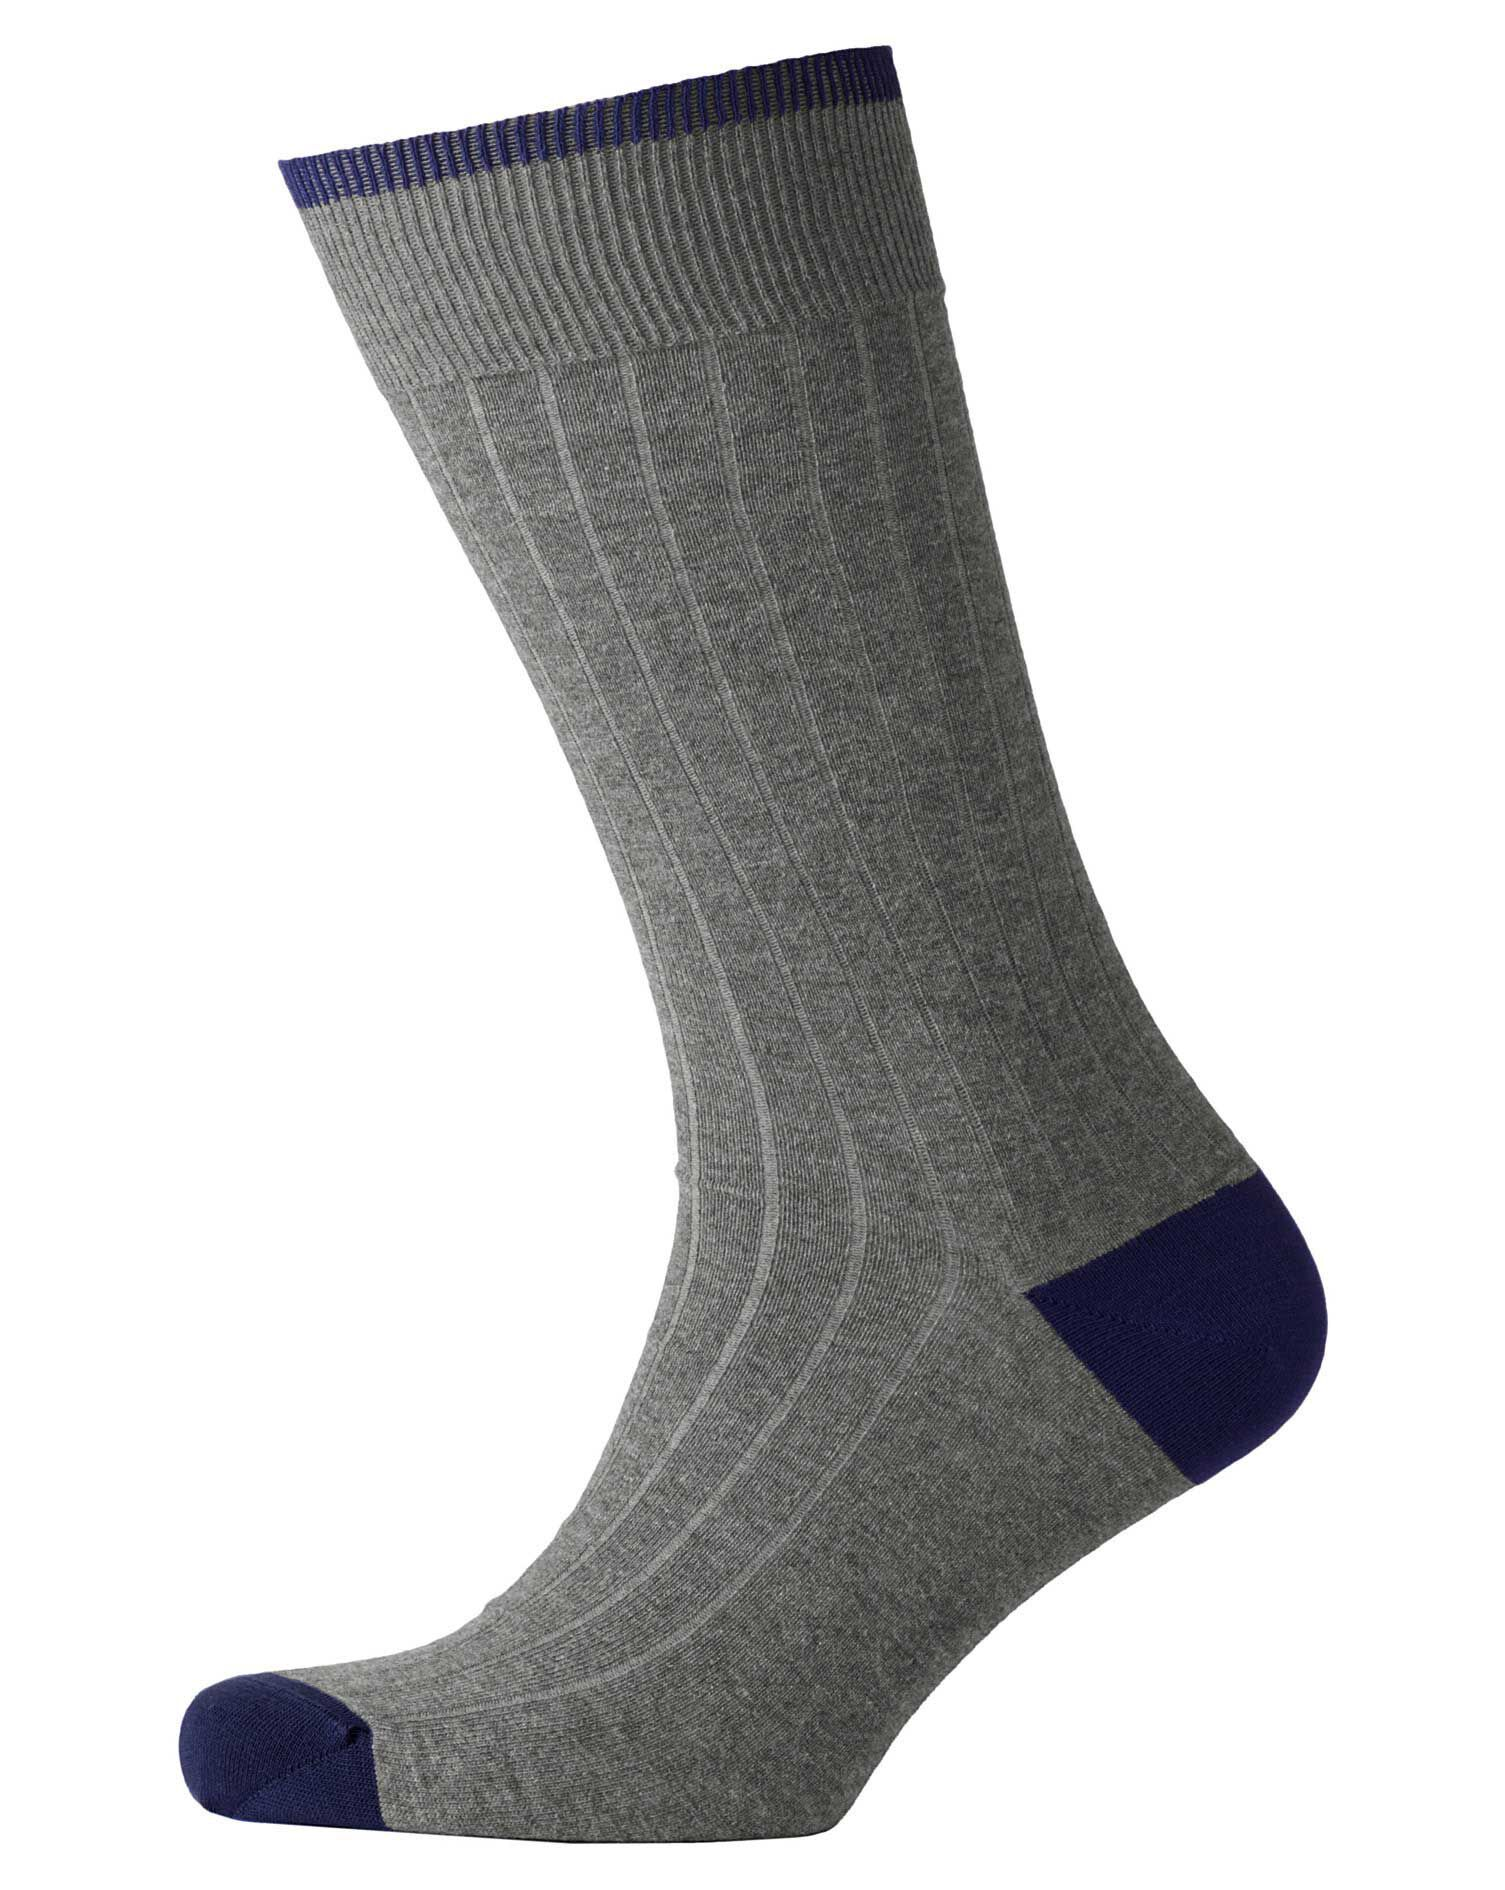 Grey Ribbed Socks Size Large by Charles Tyrwhitt